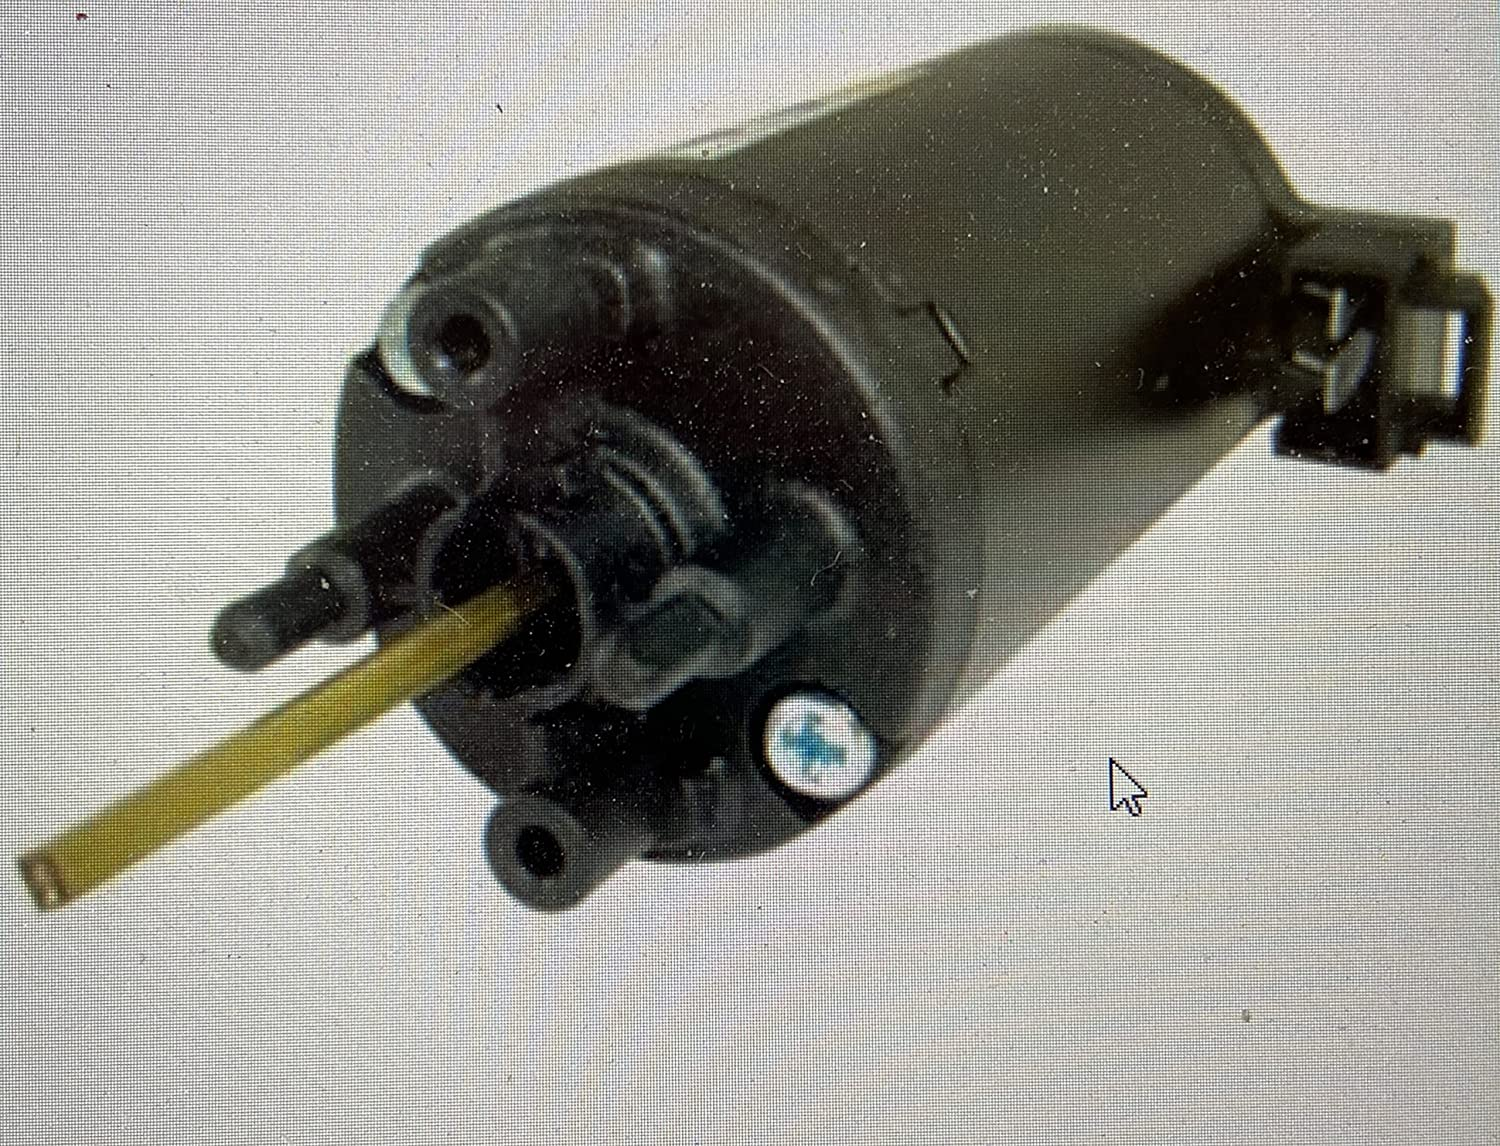 3-12VDC Cheap SALE Start Gear Motor. Double Shafted Shaft at Spins Excellent 2500 Rpm Inclu